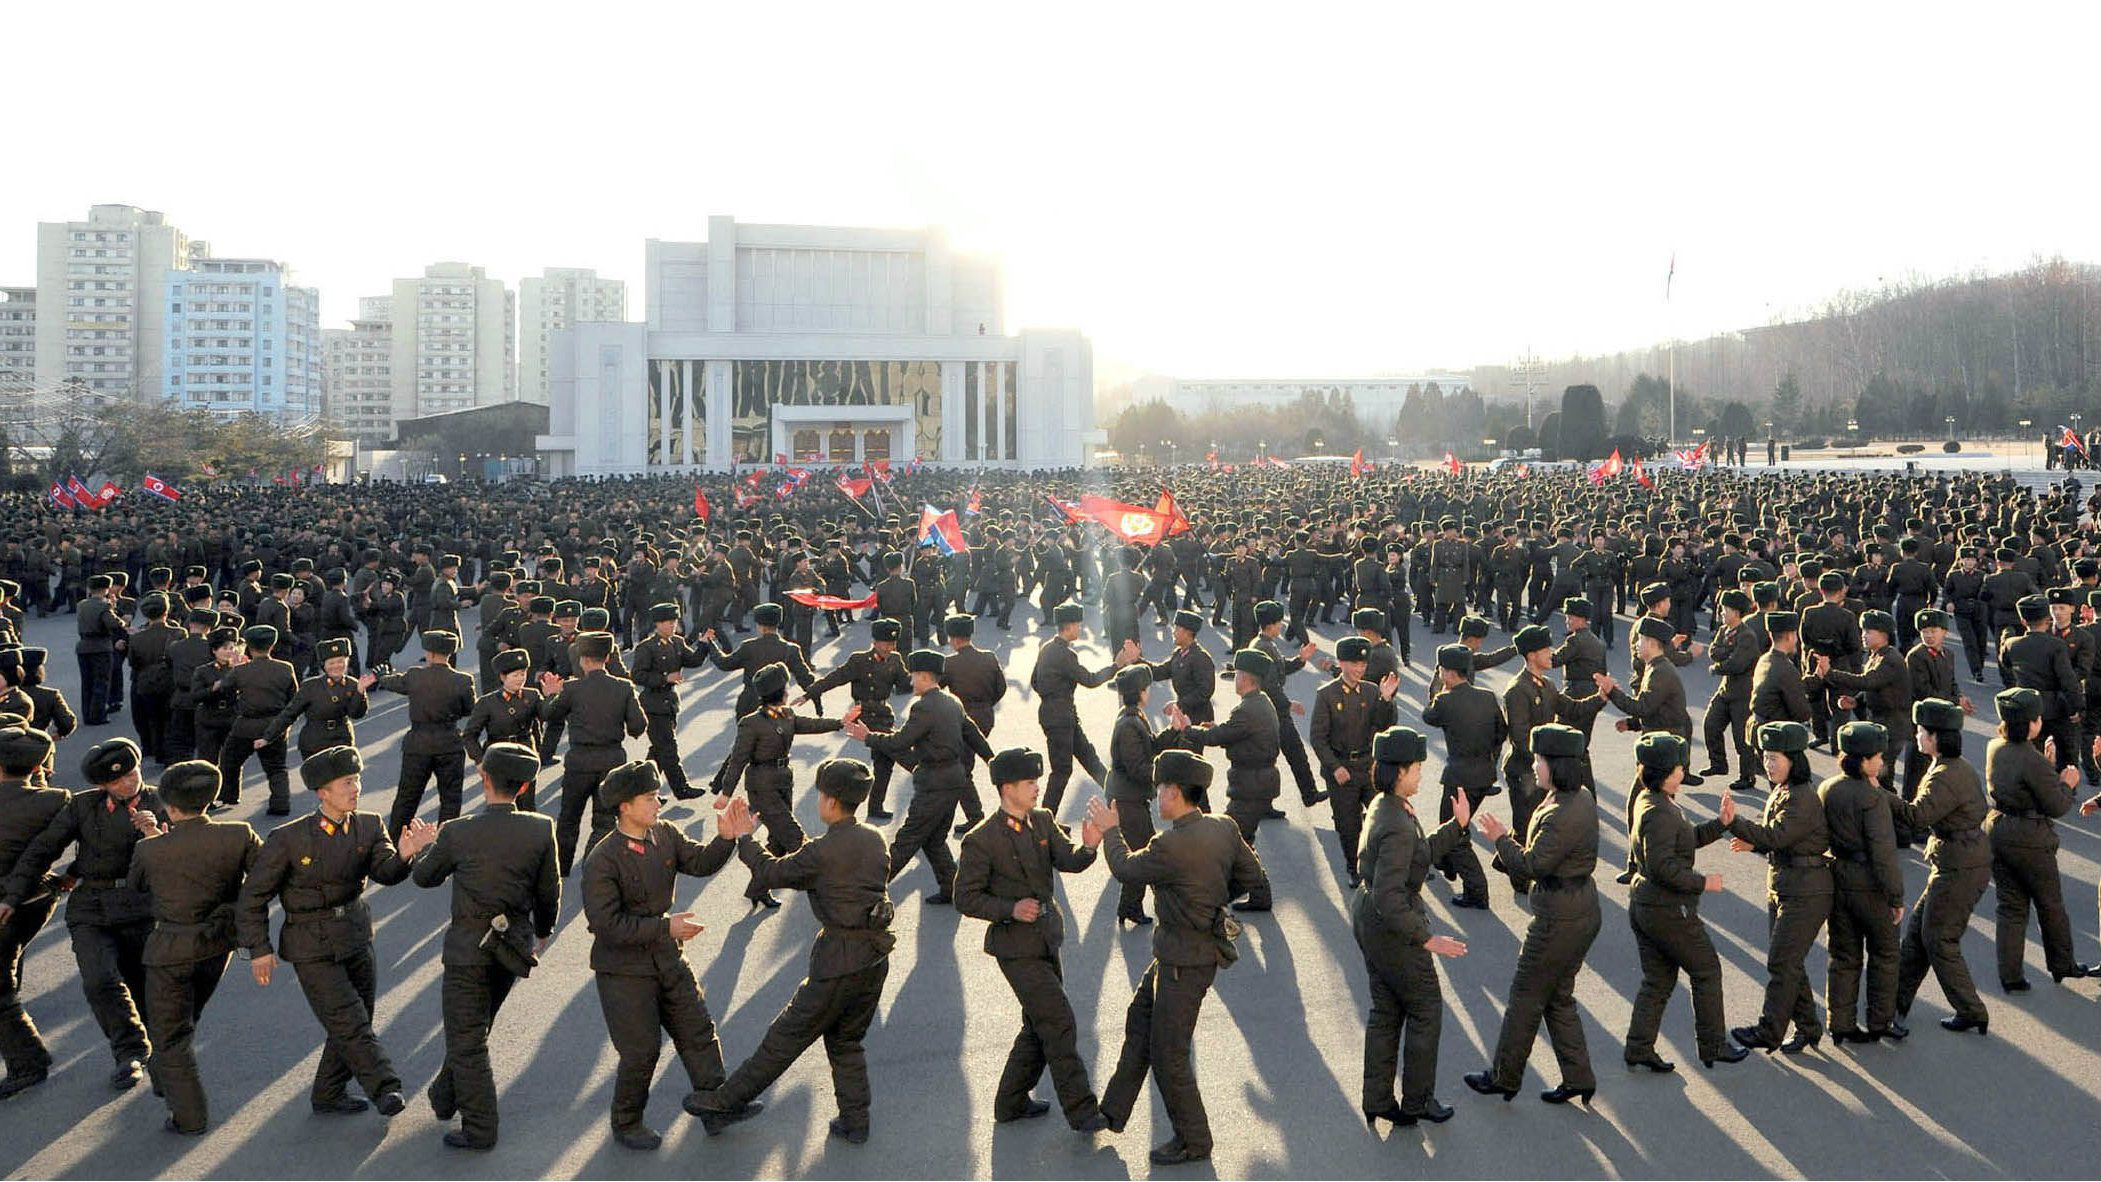 Members of North Korea's Ministry of the People's Armed Forces (MPAF) dance during a celebration of the anniversary of the February 8 founding of the regular revolutionary armed forces of Korea, at an undisclosed location in this undated photo released by North Korea's Korean Central News Agency (KCNA) in Pyongyang on February 8, 2015. REUTERS/KCNA